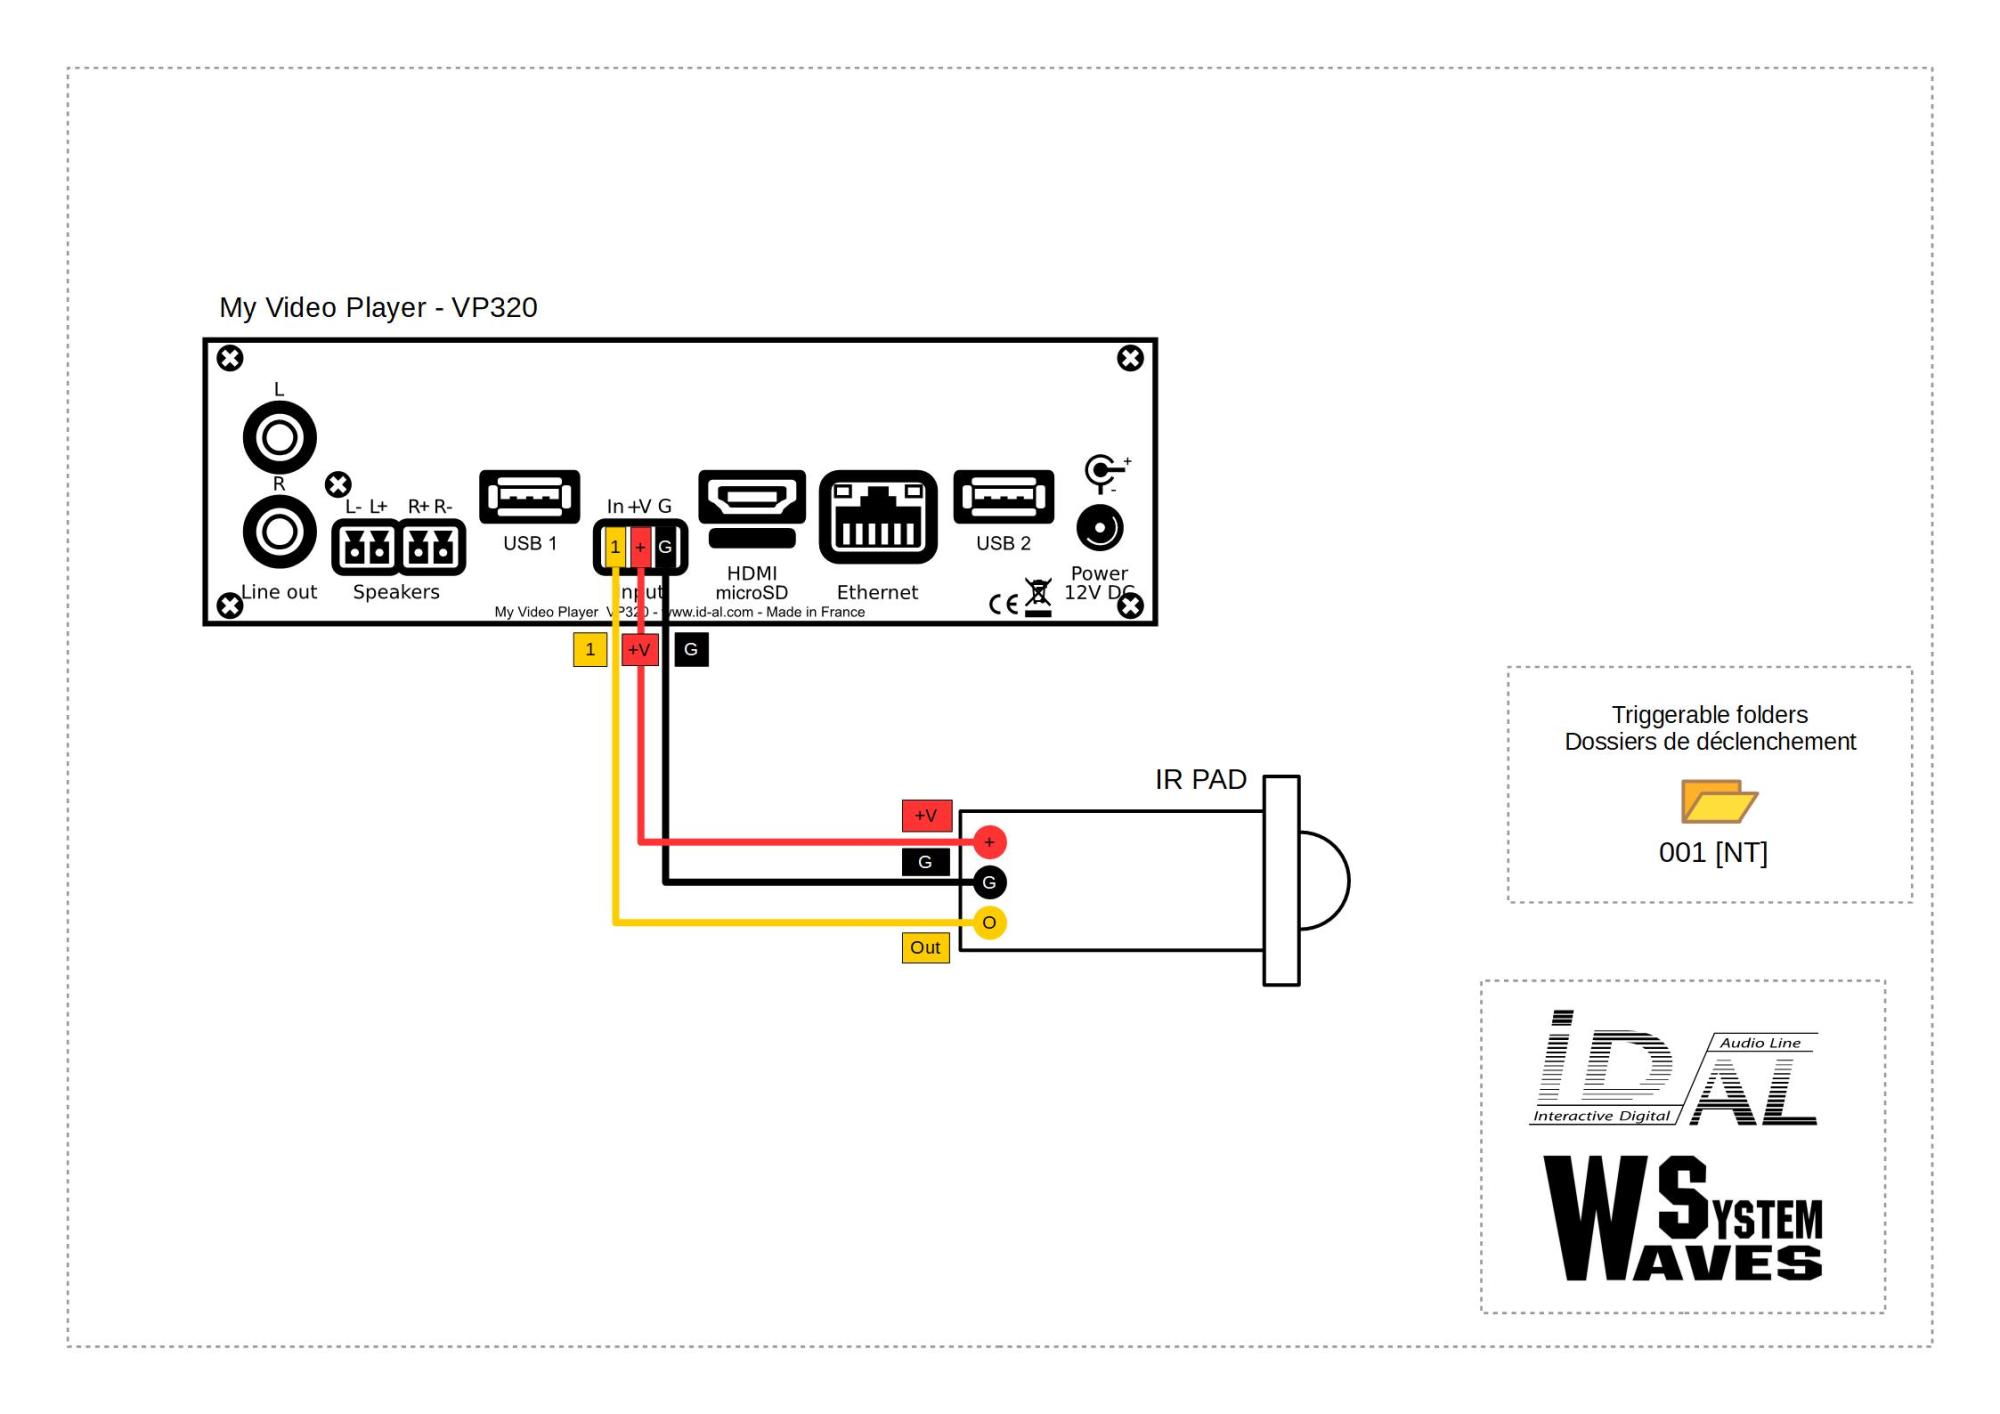 hight resolution of wiring diagram for my video player vp320 connection of a ir pad